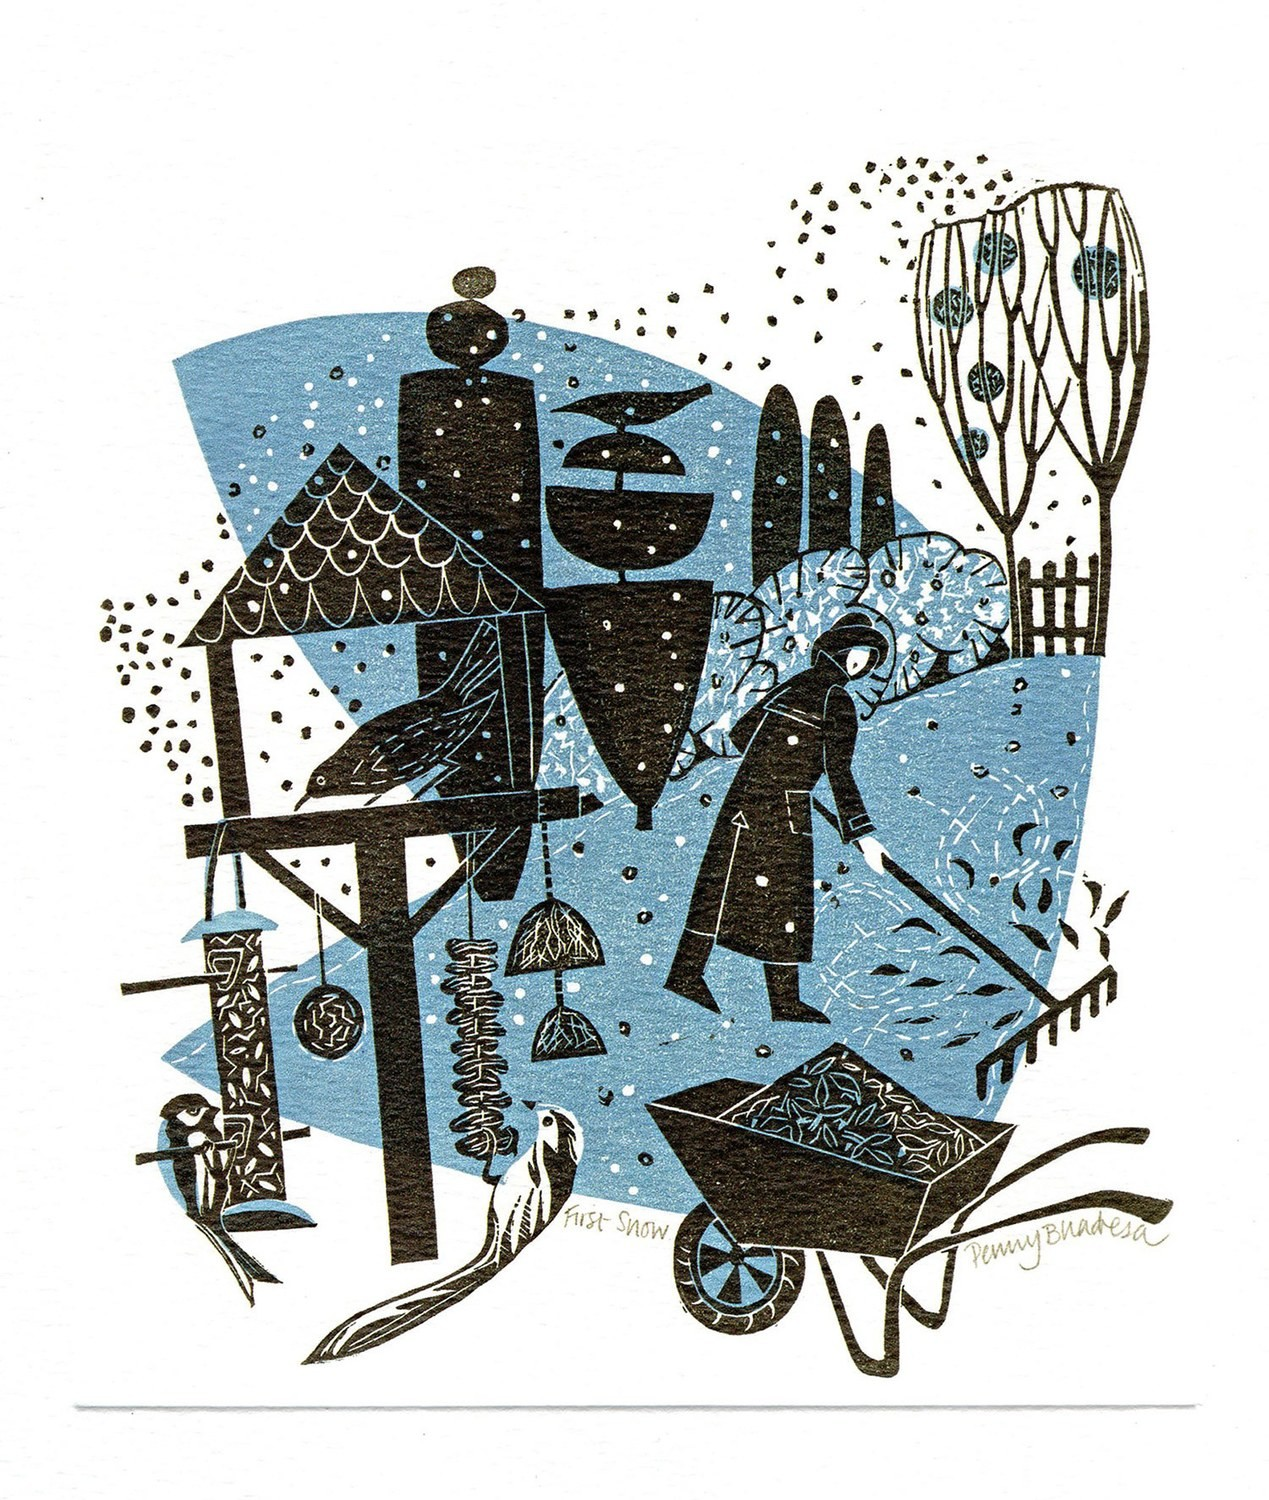 First Snow- Winter Printmakers Card